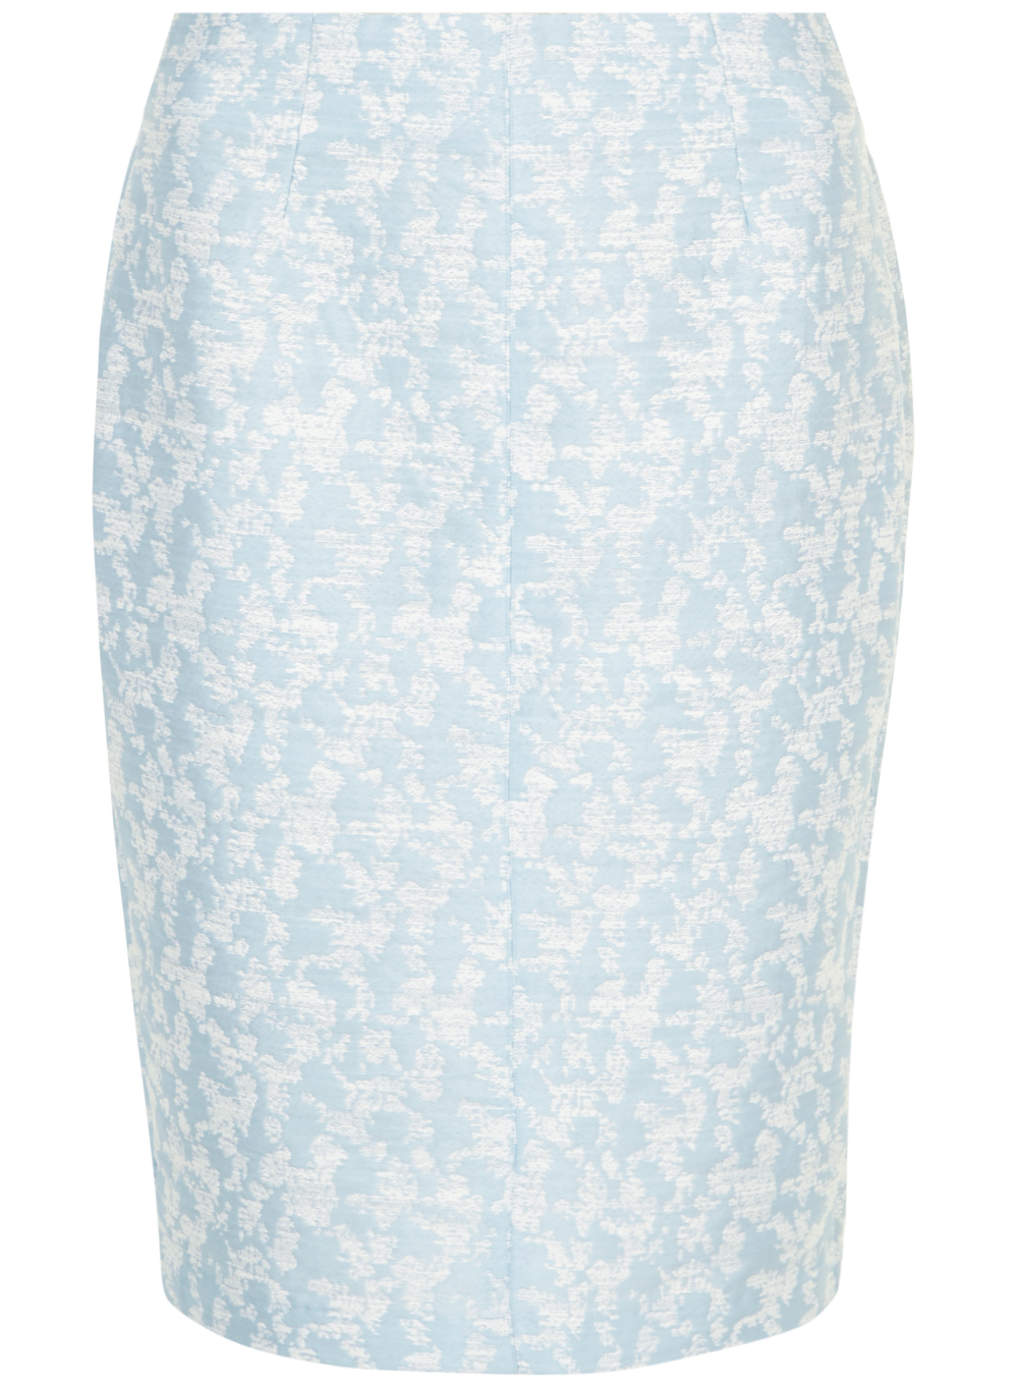 Blue Jacquard Pencil Skirt